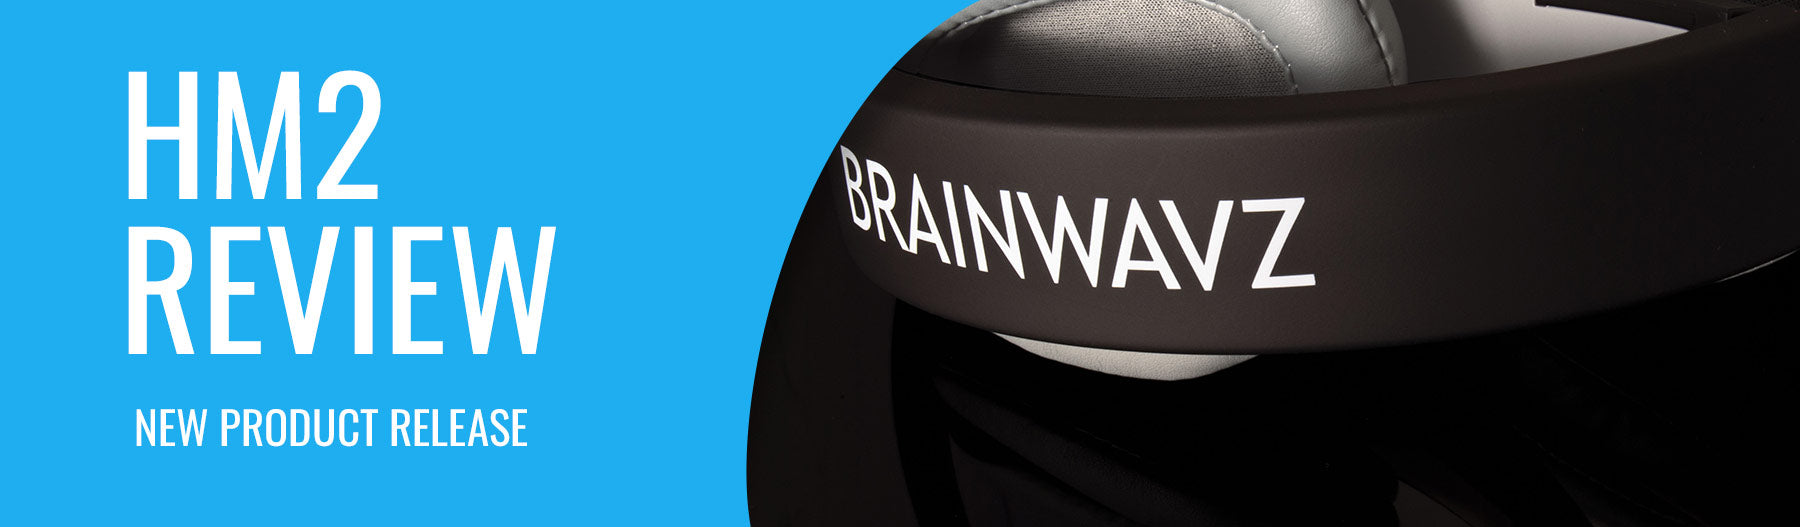 Brainwavz HM2 video review